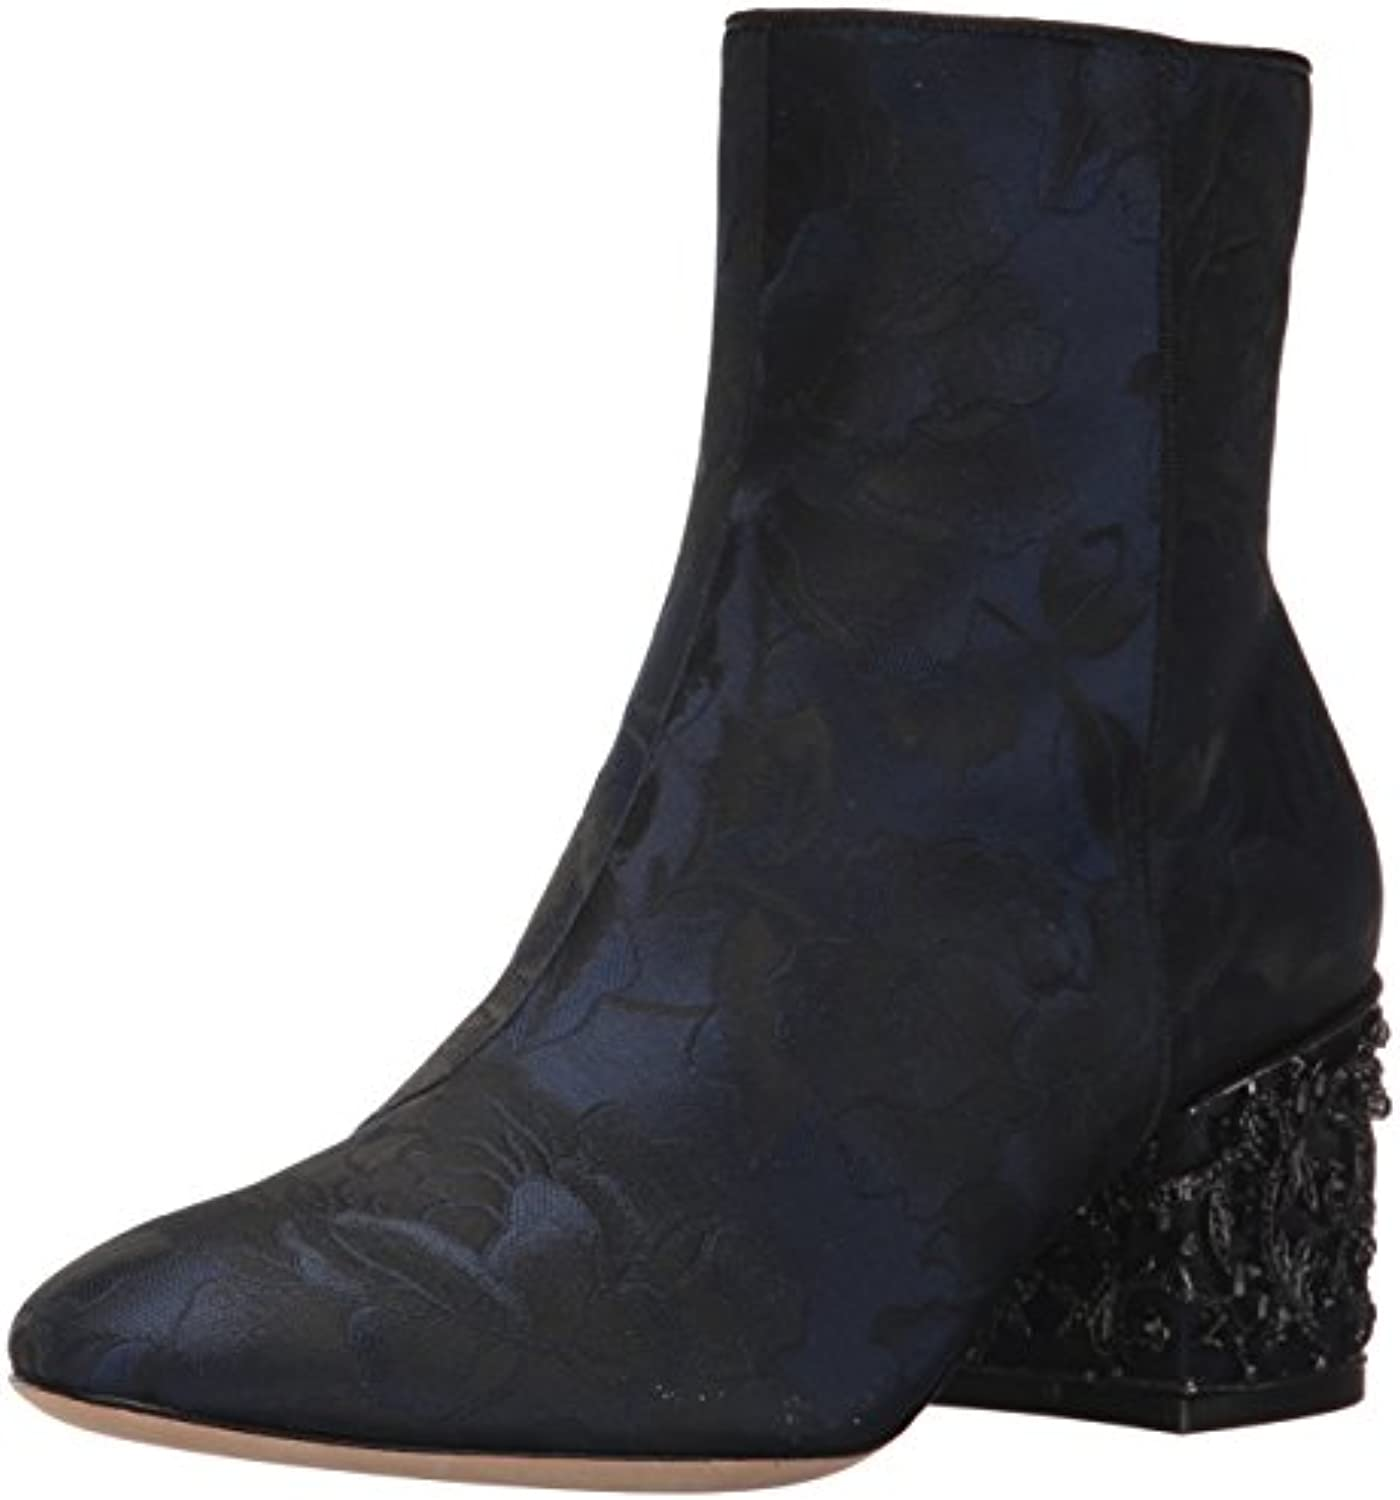 3f5bdb97a79 Badgley Mischka Women s 18145 Parent Martha Ankle ciproant-18134 Boot  B0734ZY9LS Parent 938f273